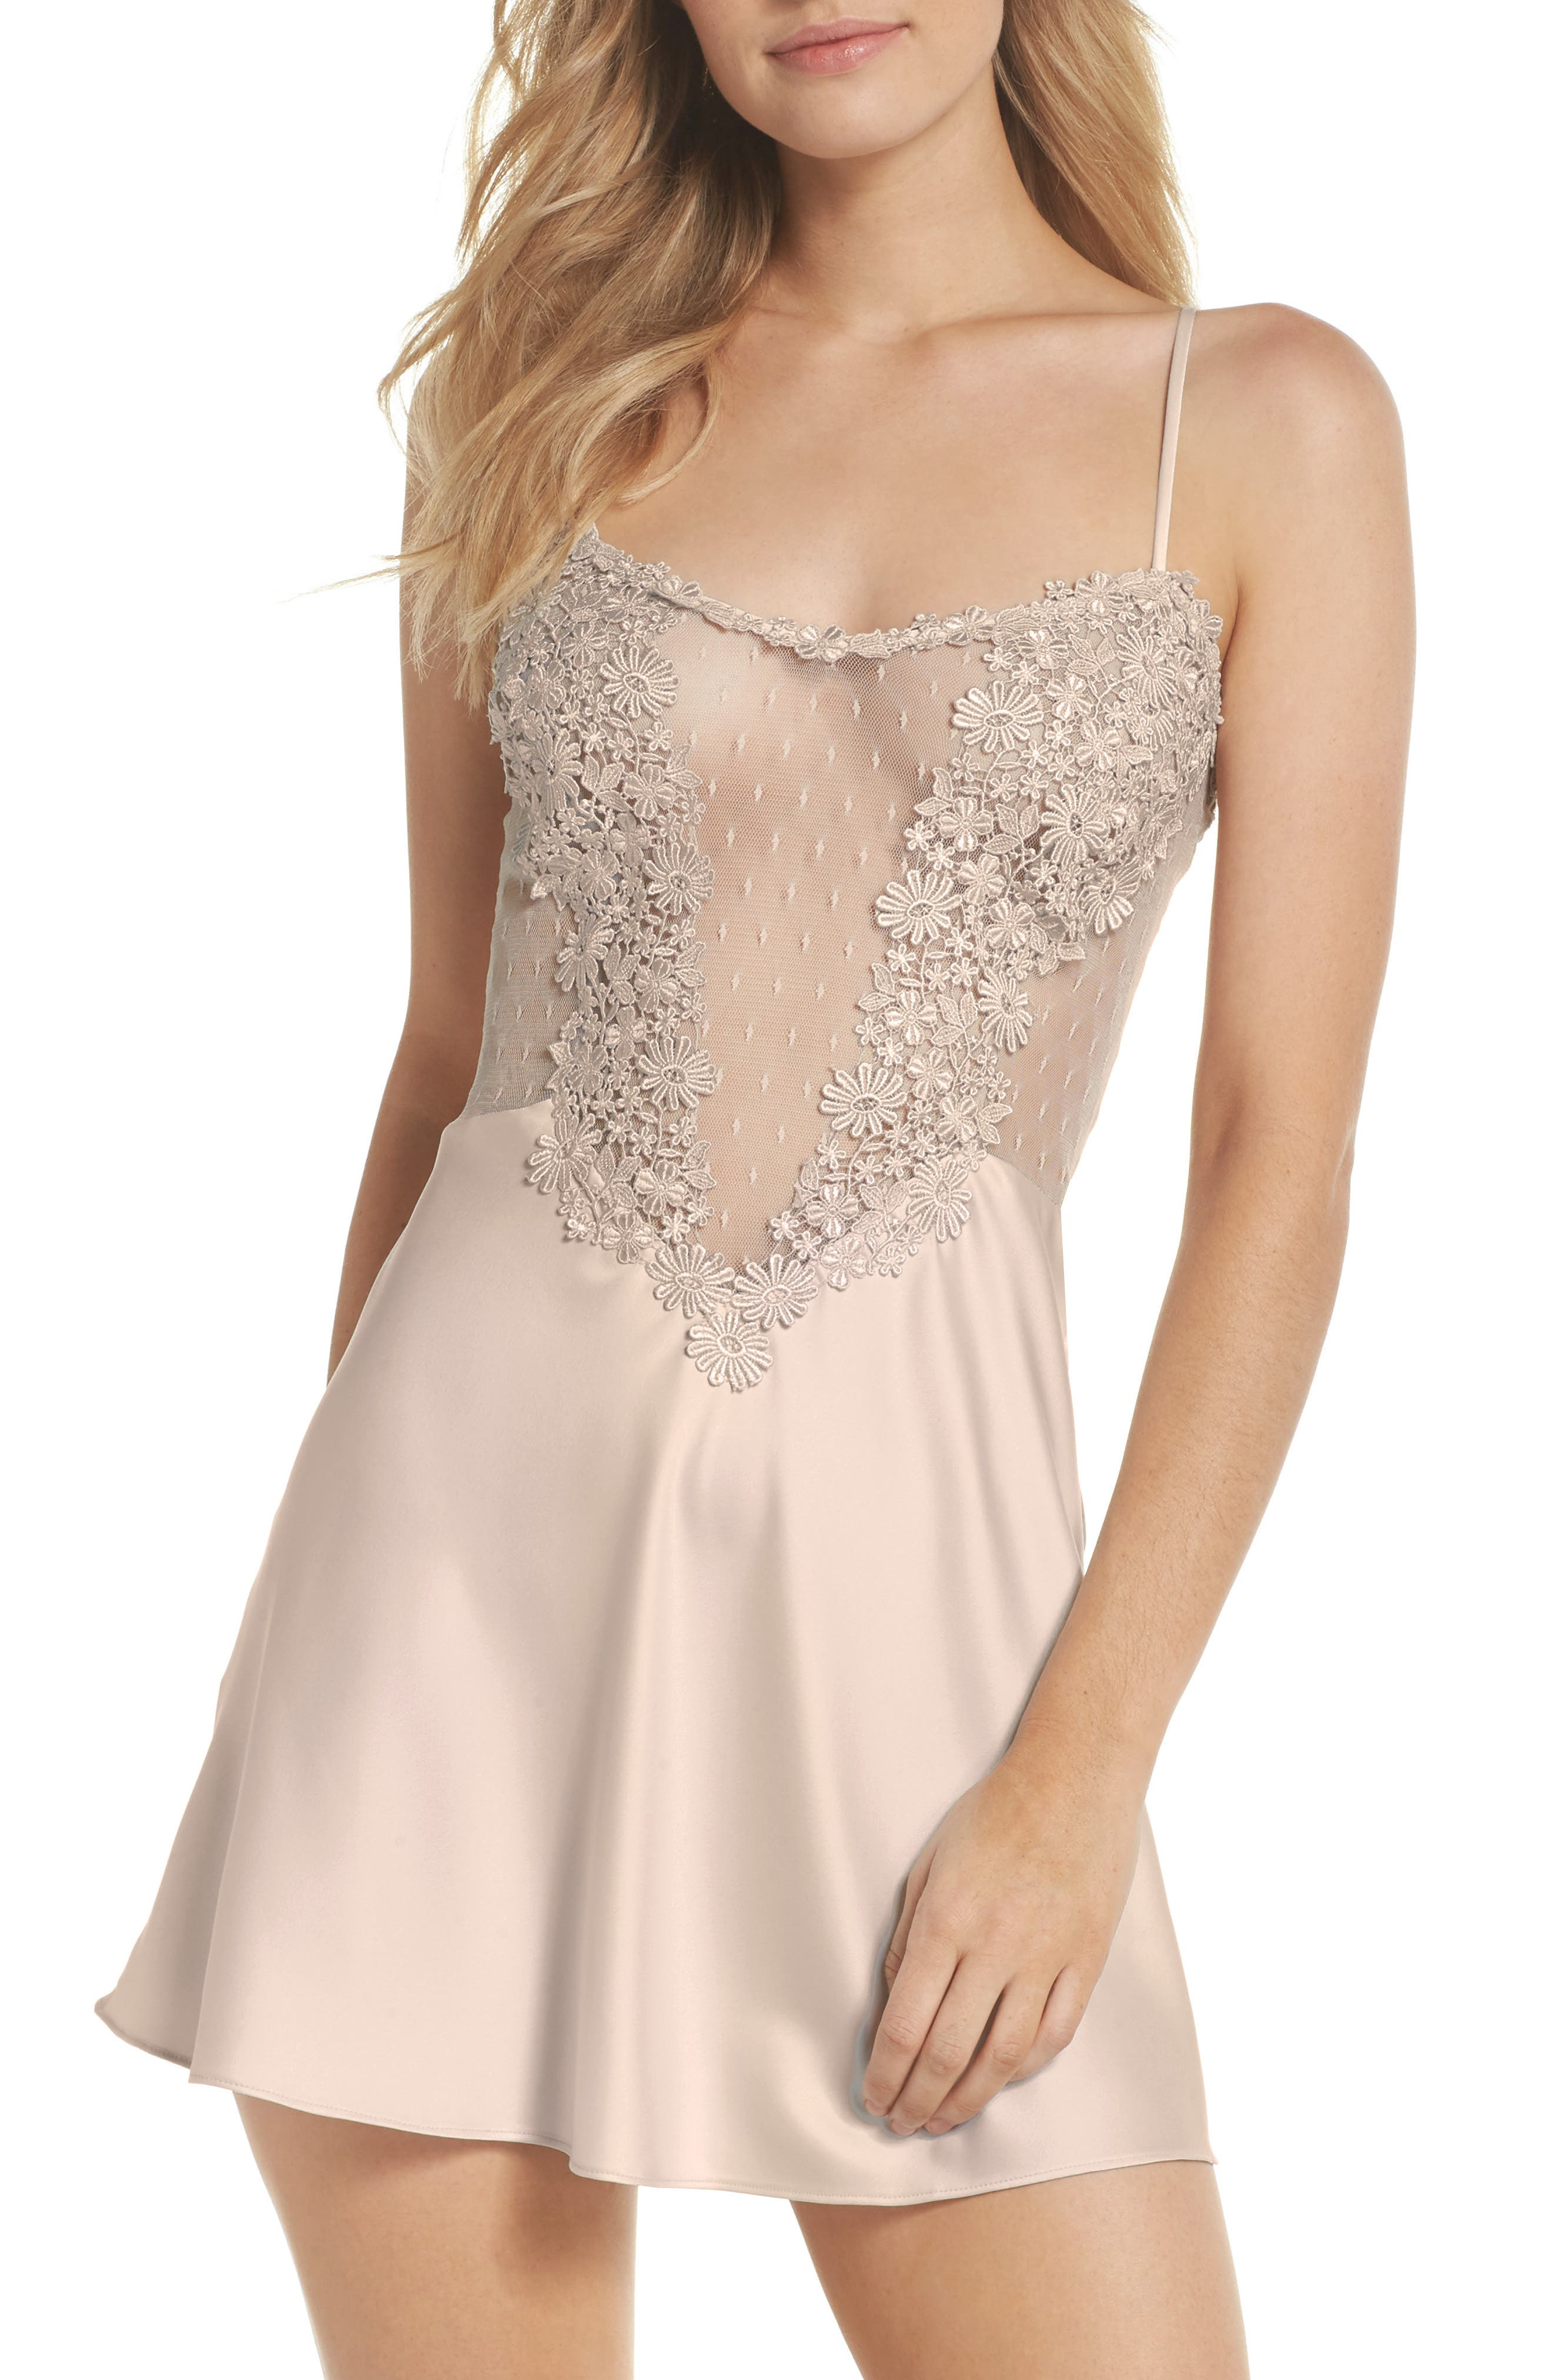 FLORA NIKROOZ Showstopper Chemise in Champagne